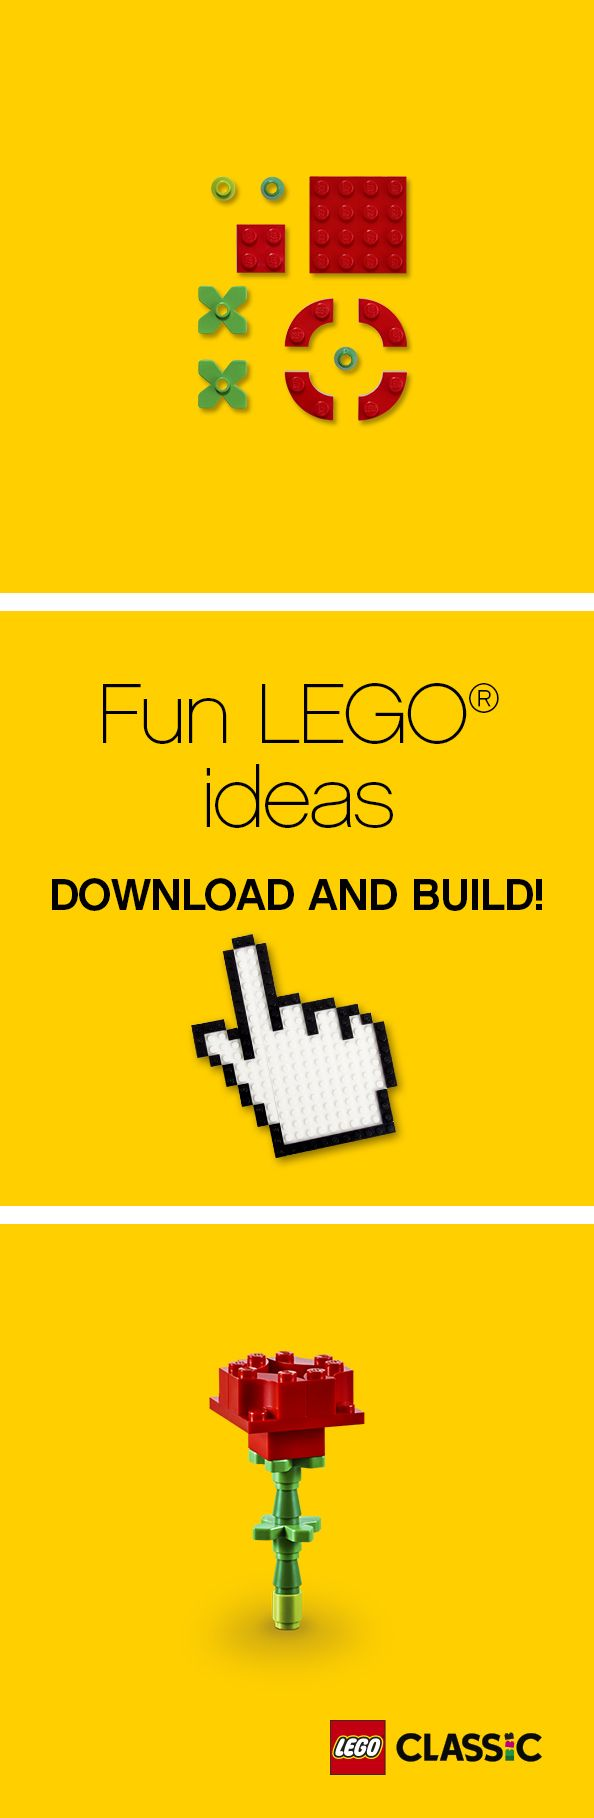 For a fun and creative way to show someone big or small how much you care, take a look at our building instructions and create your own LEGO roses! Your family will love this festive gift or activity.